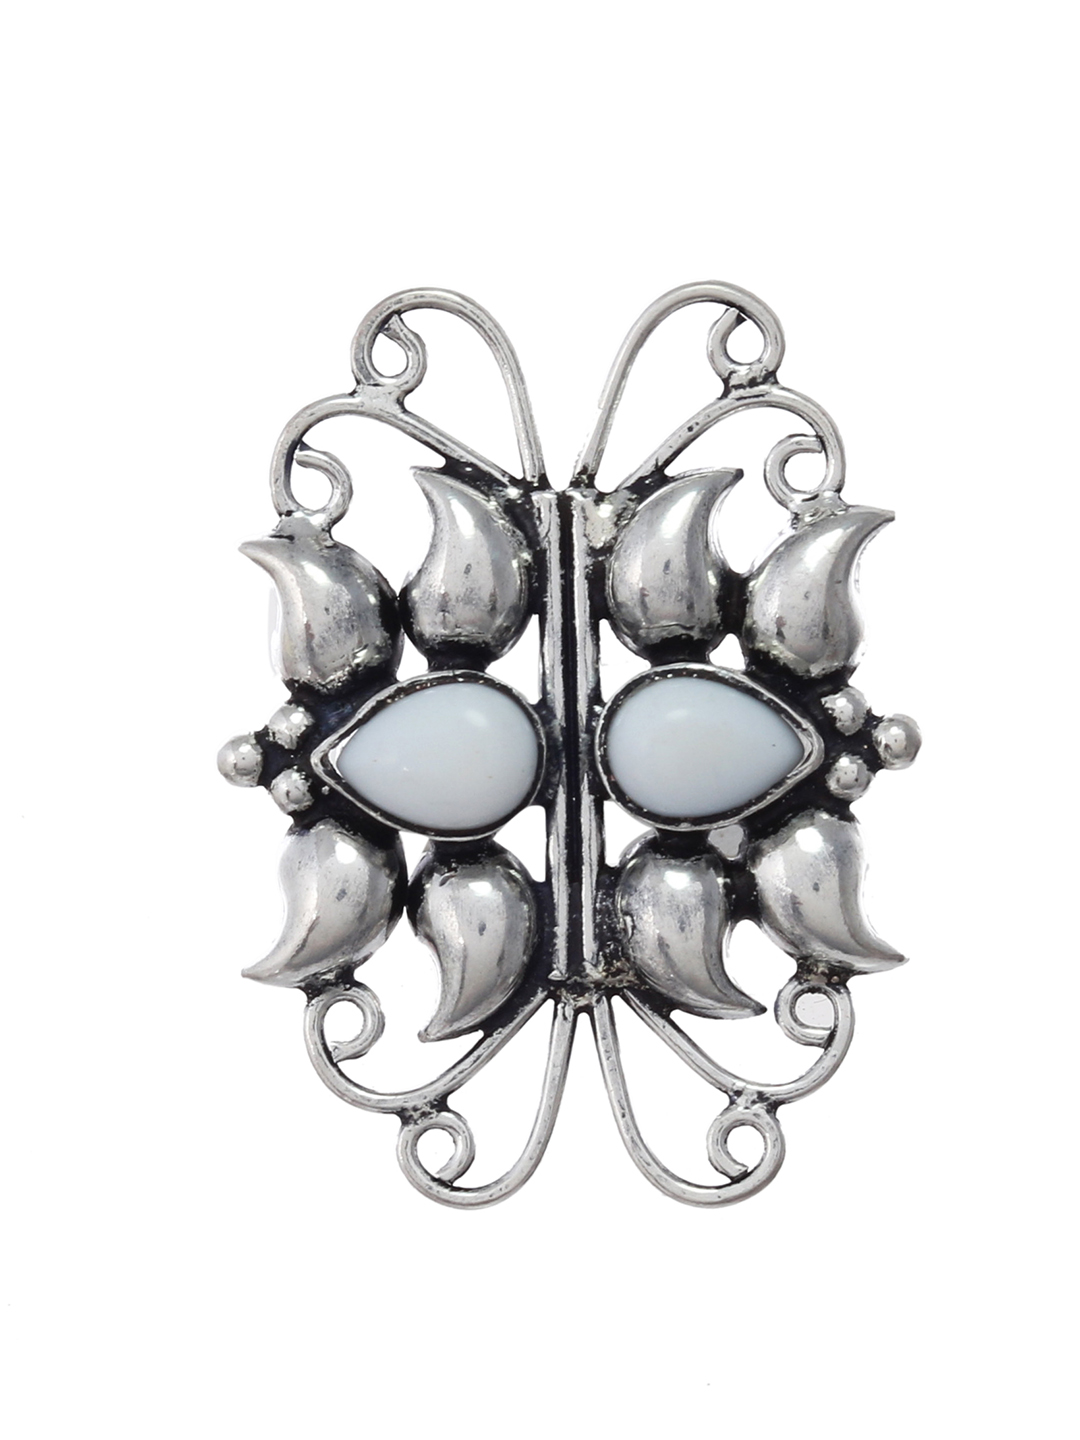 Silvermerc Designs Silver-Plated & White Stone-Studded Oxidised Adjustable Finger Ring Price in India